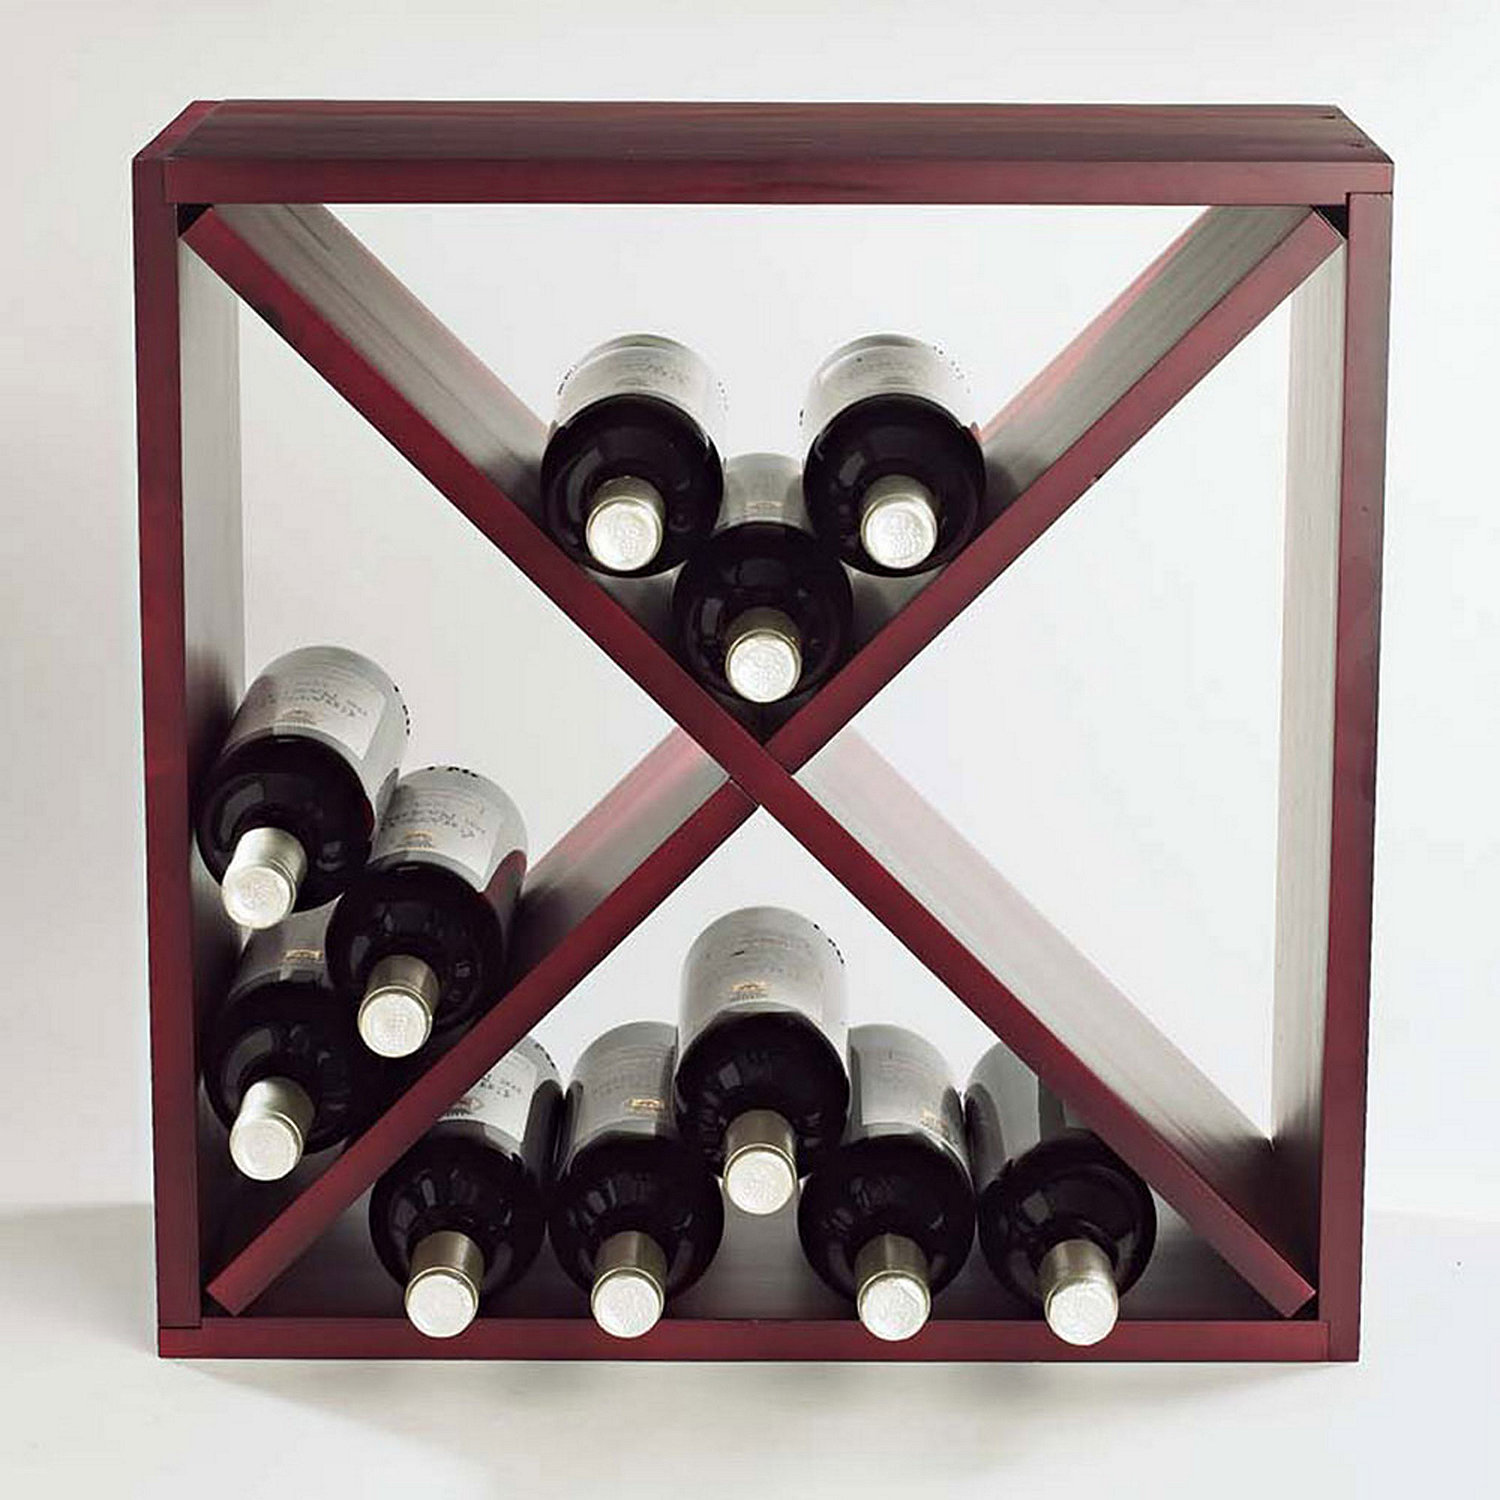 24 Bottle Compact Cellar Cube Wine Rack Mahogany Wine Enthusiast